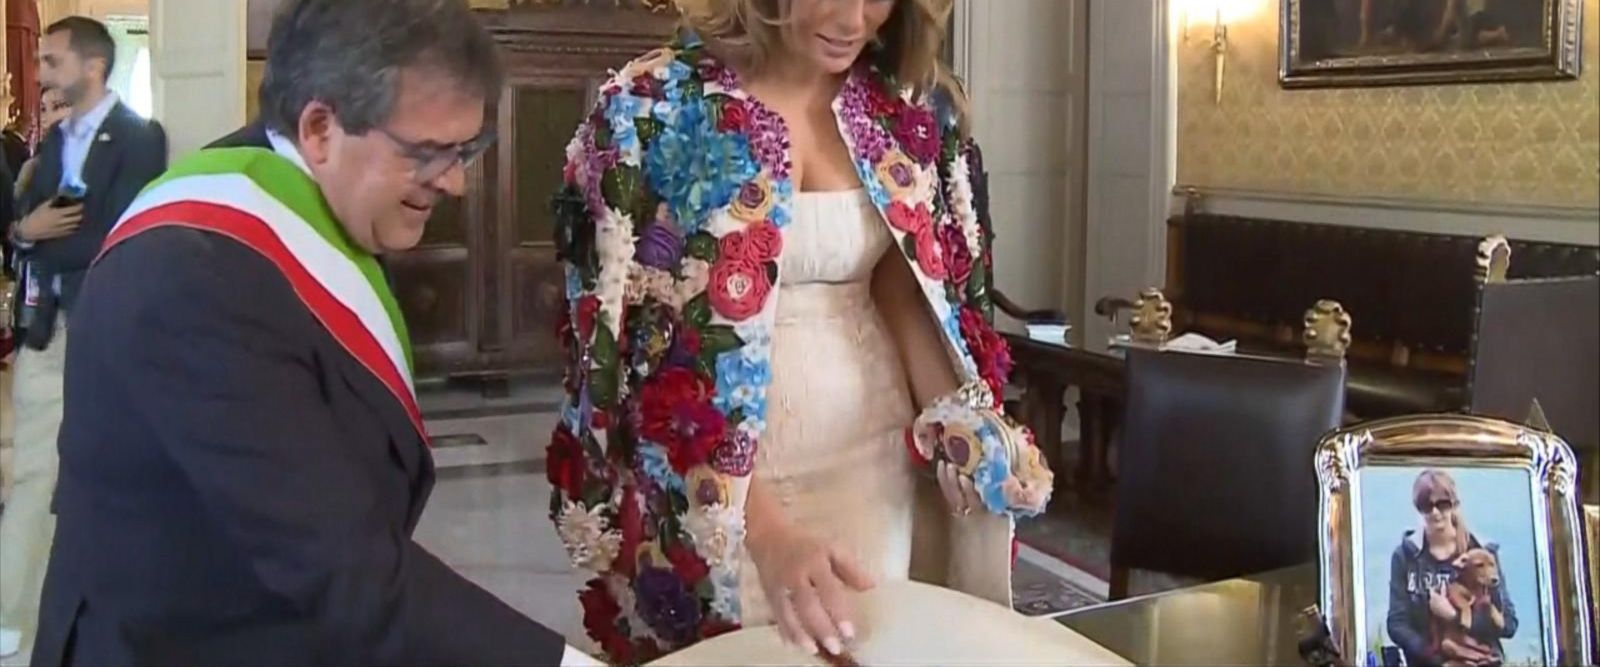 The first lady is turning heads for wearing the high-priced Dolce & Gabbana item in Sicily today.